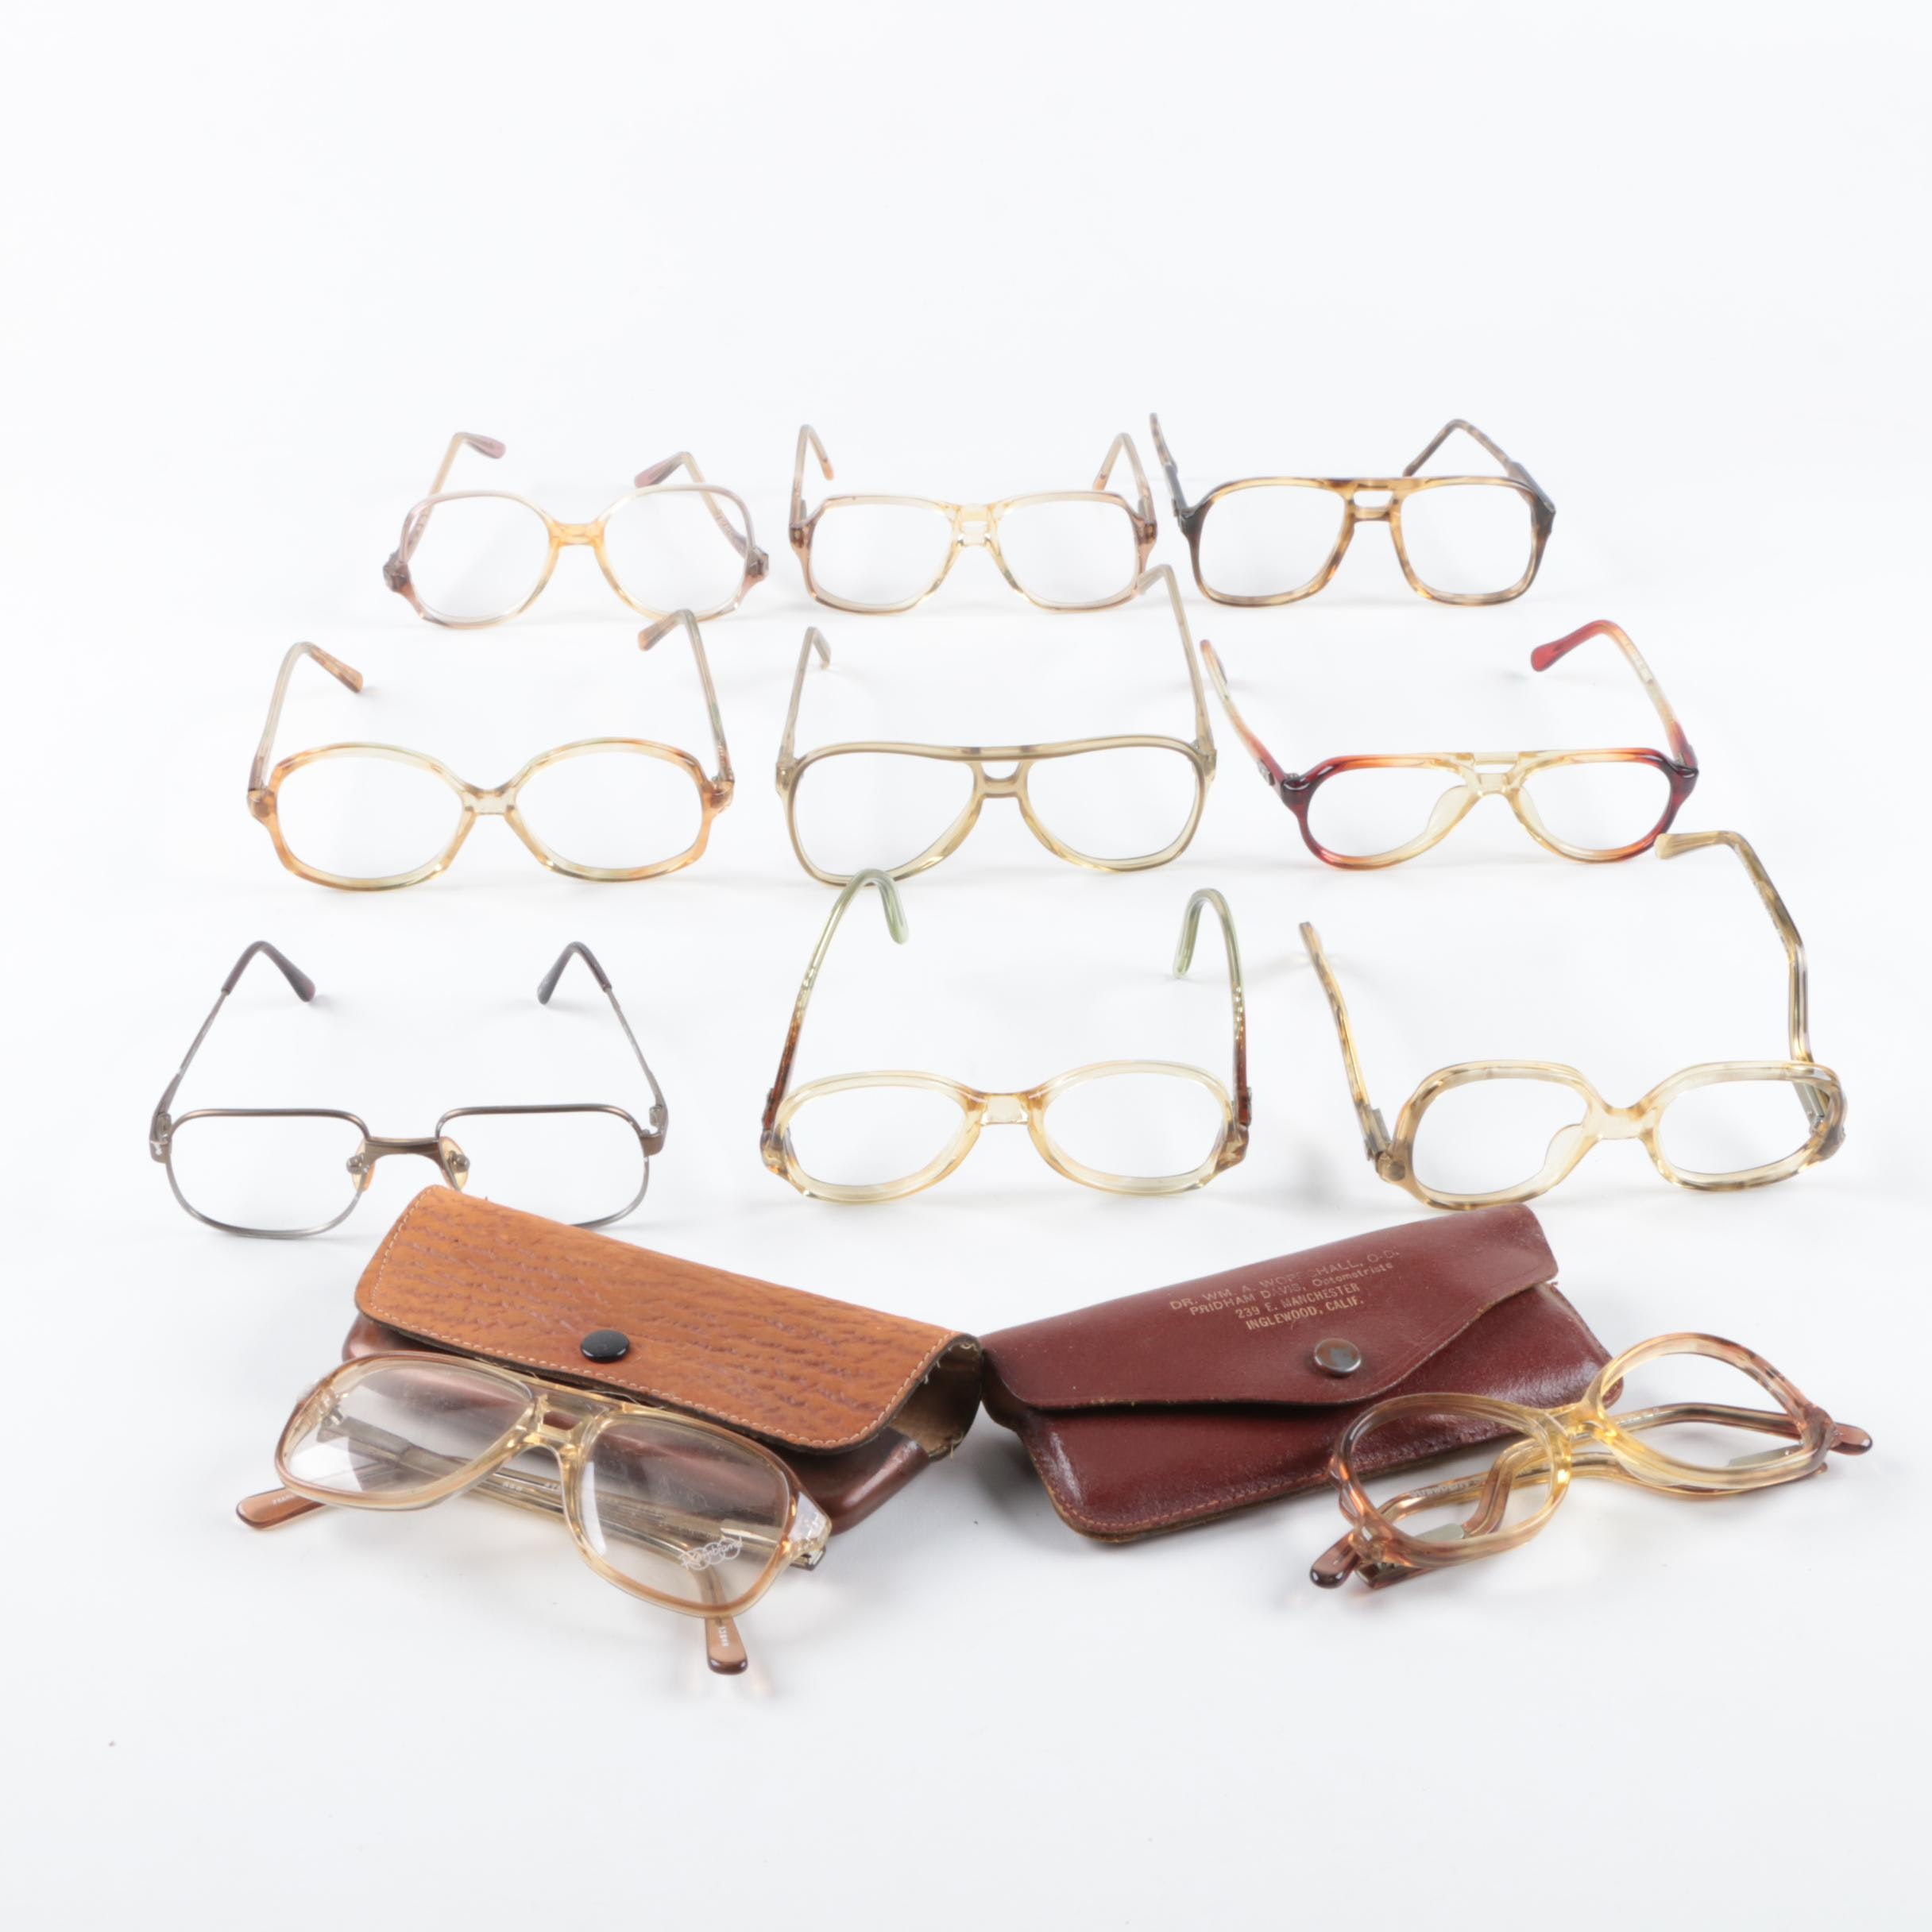 Children's Eyeglass Frames Including Vintage Victory and Liberty